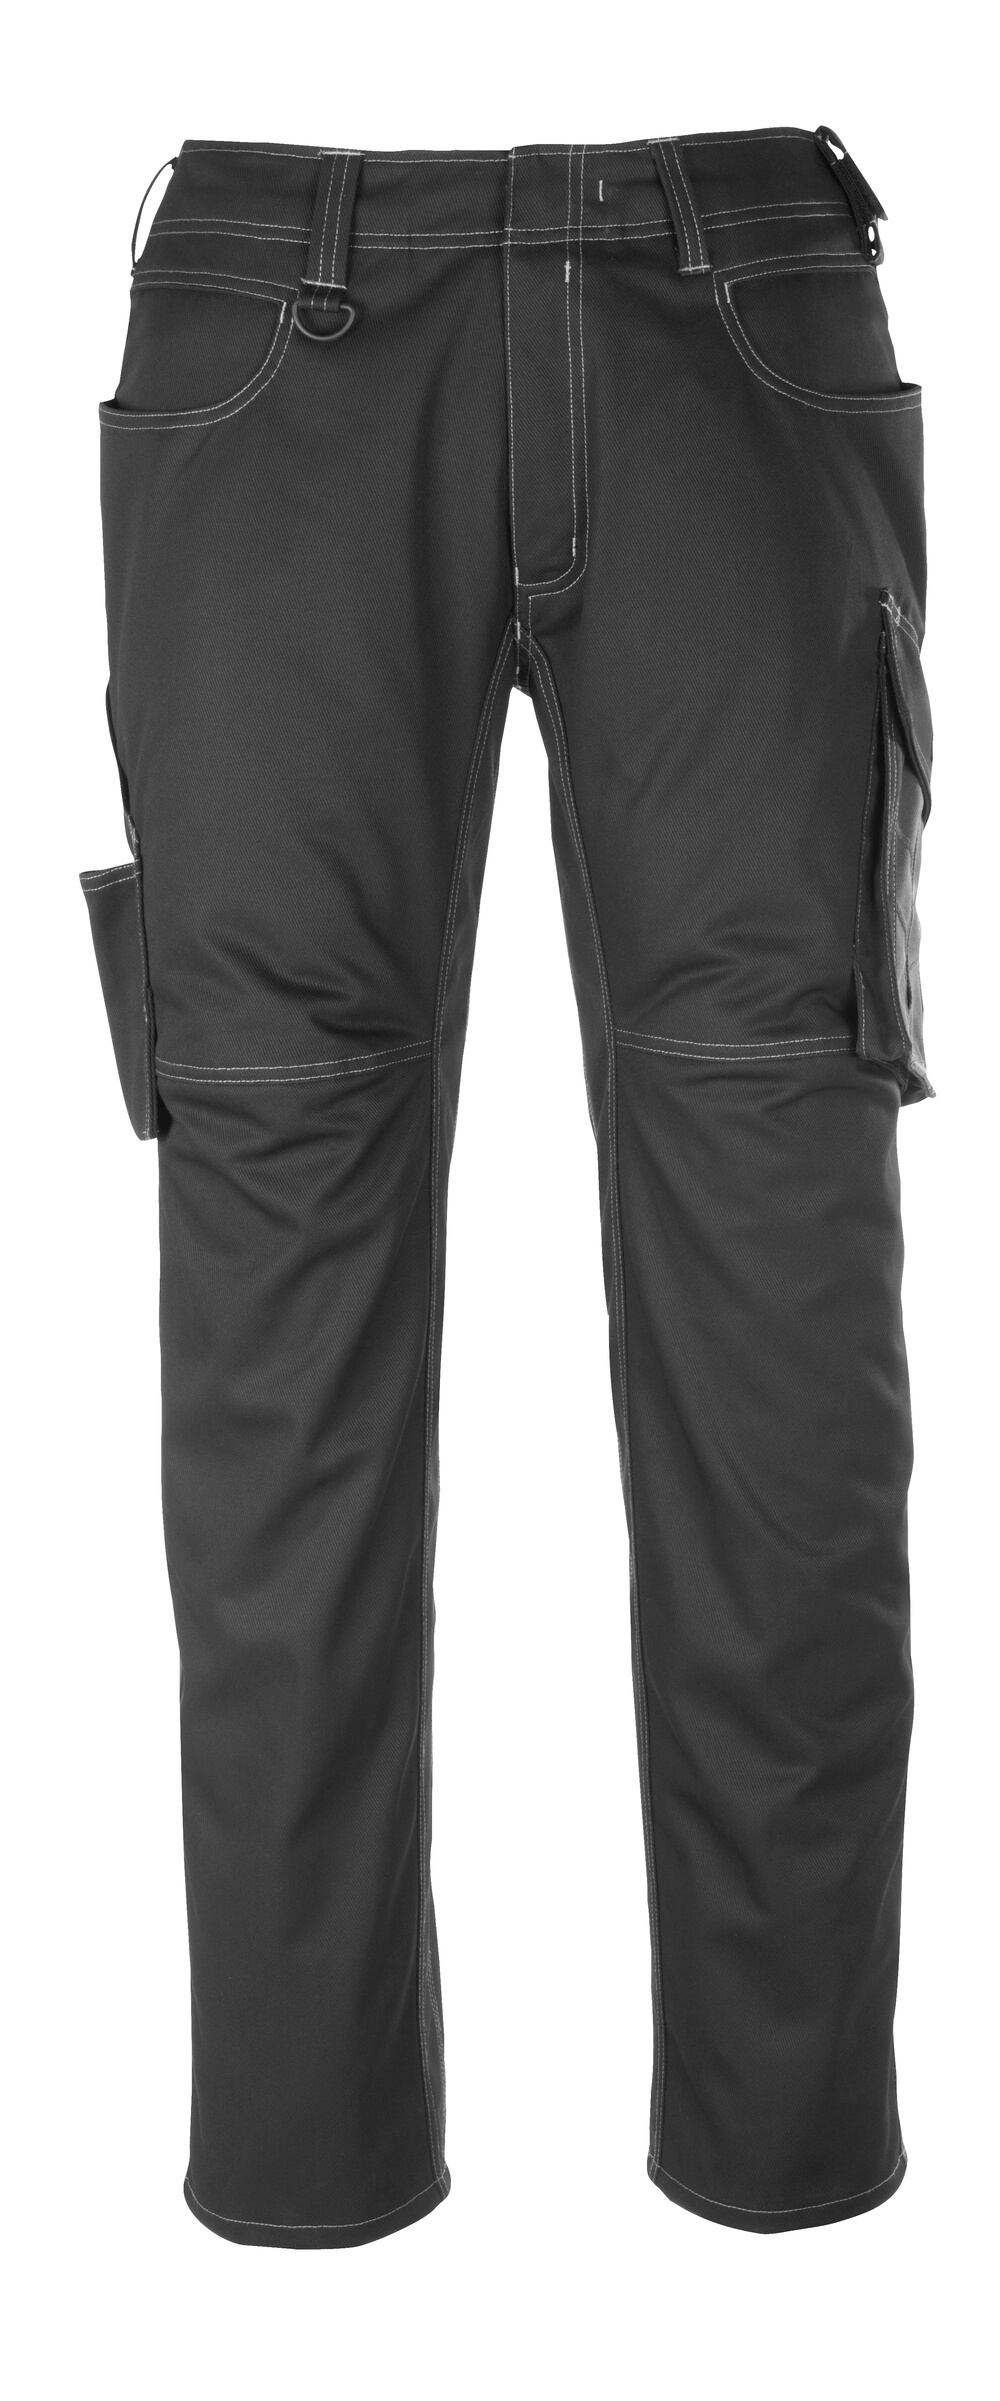 12079-203-0918 Pants with thigh pockets - black/dark anthracite